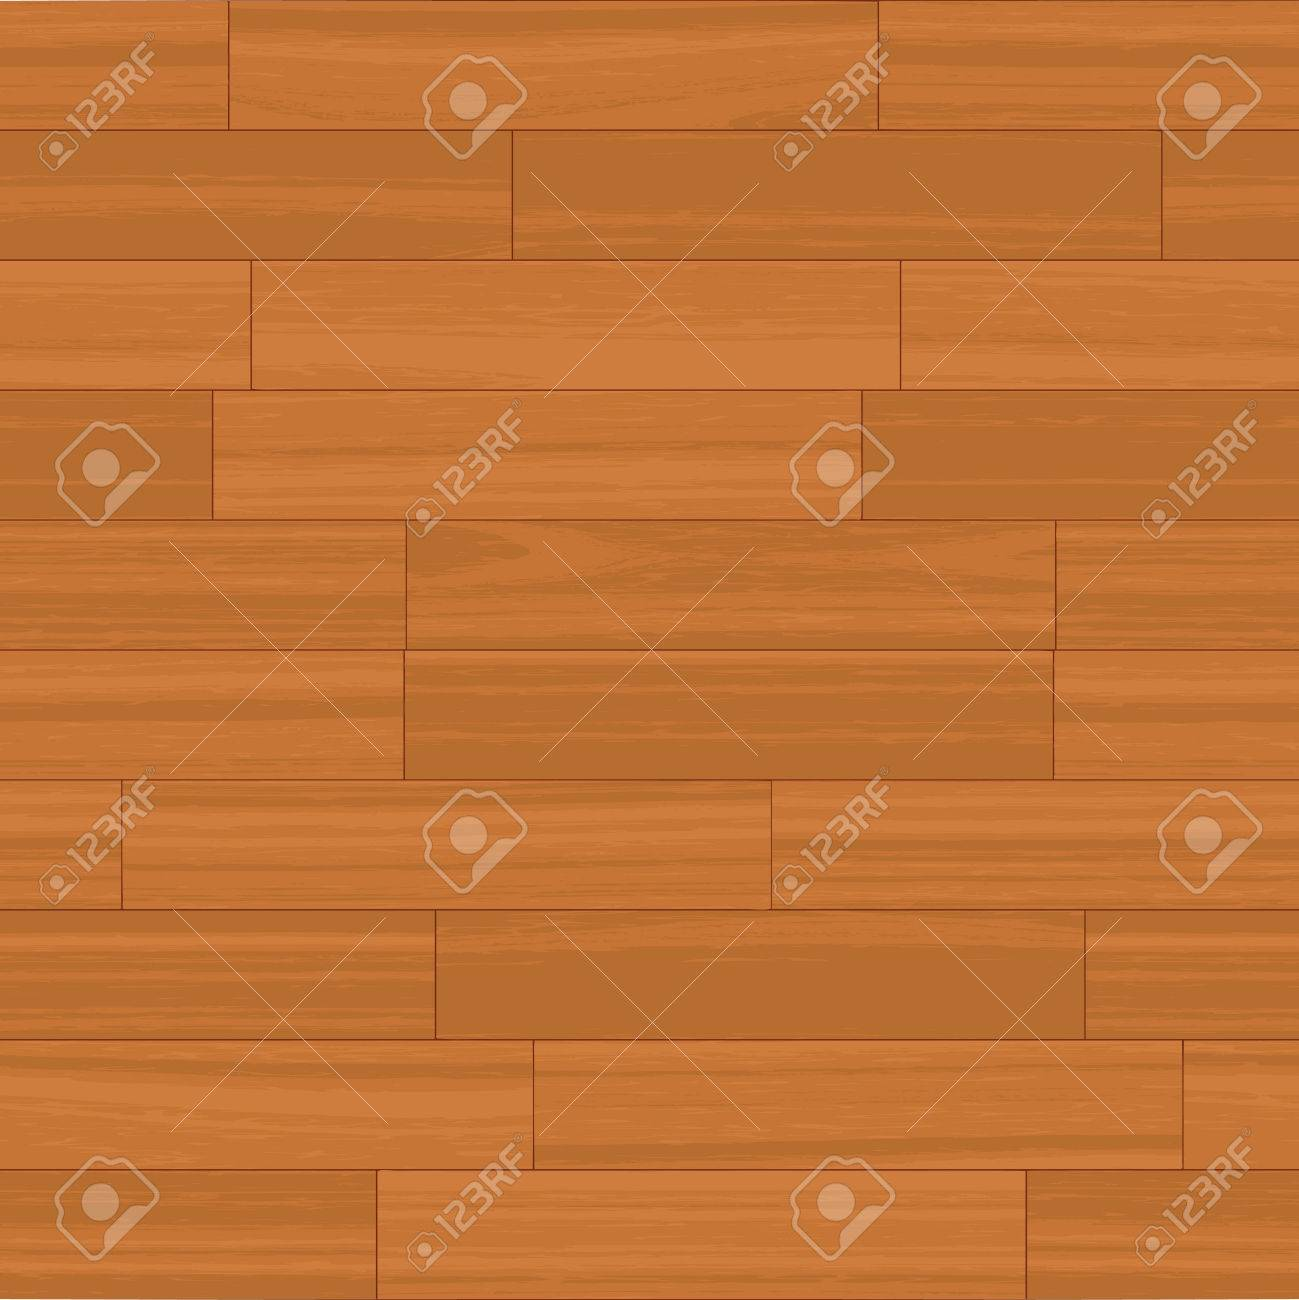 This Wood Floor Pattern Tiles Seamlessly As A Background. Stock Vector    4301732